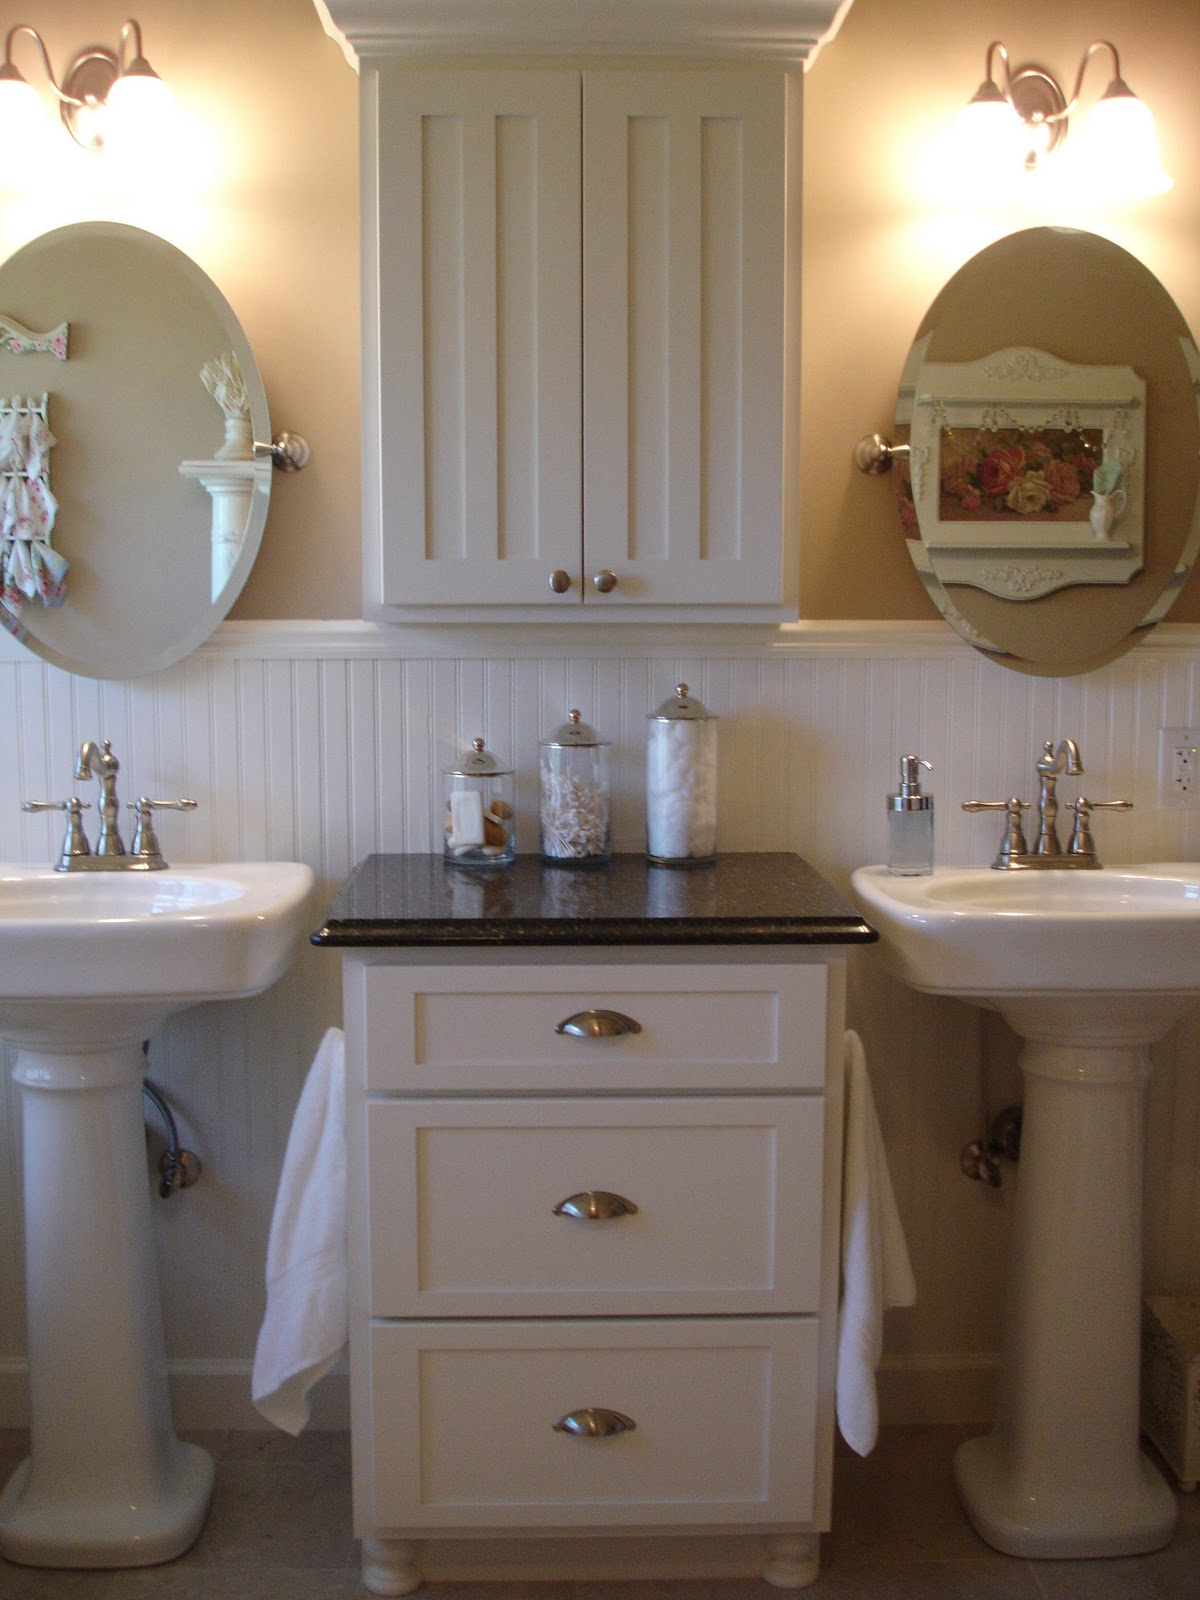 Forever decorating my master bathroom update for Master bathroom designs small spaces